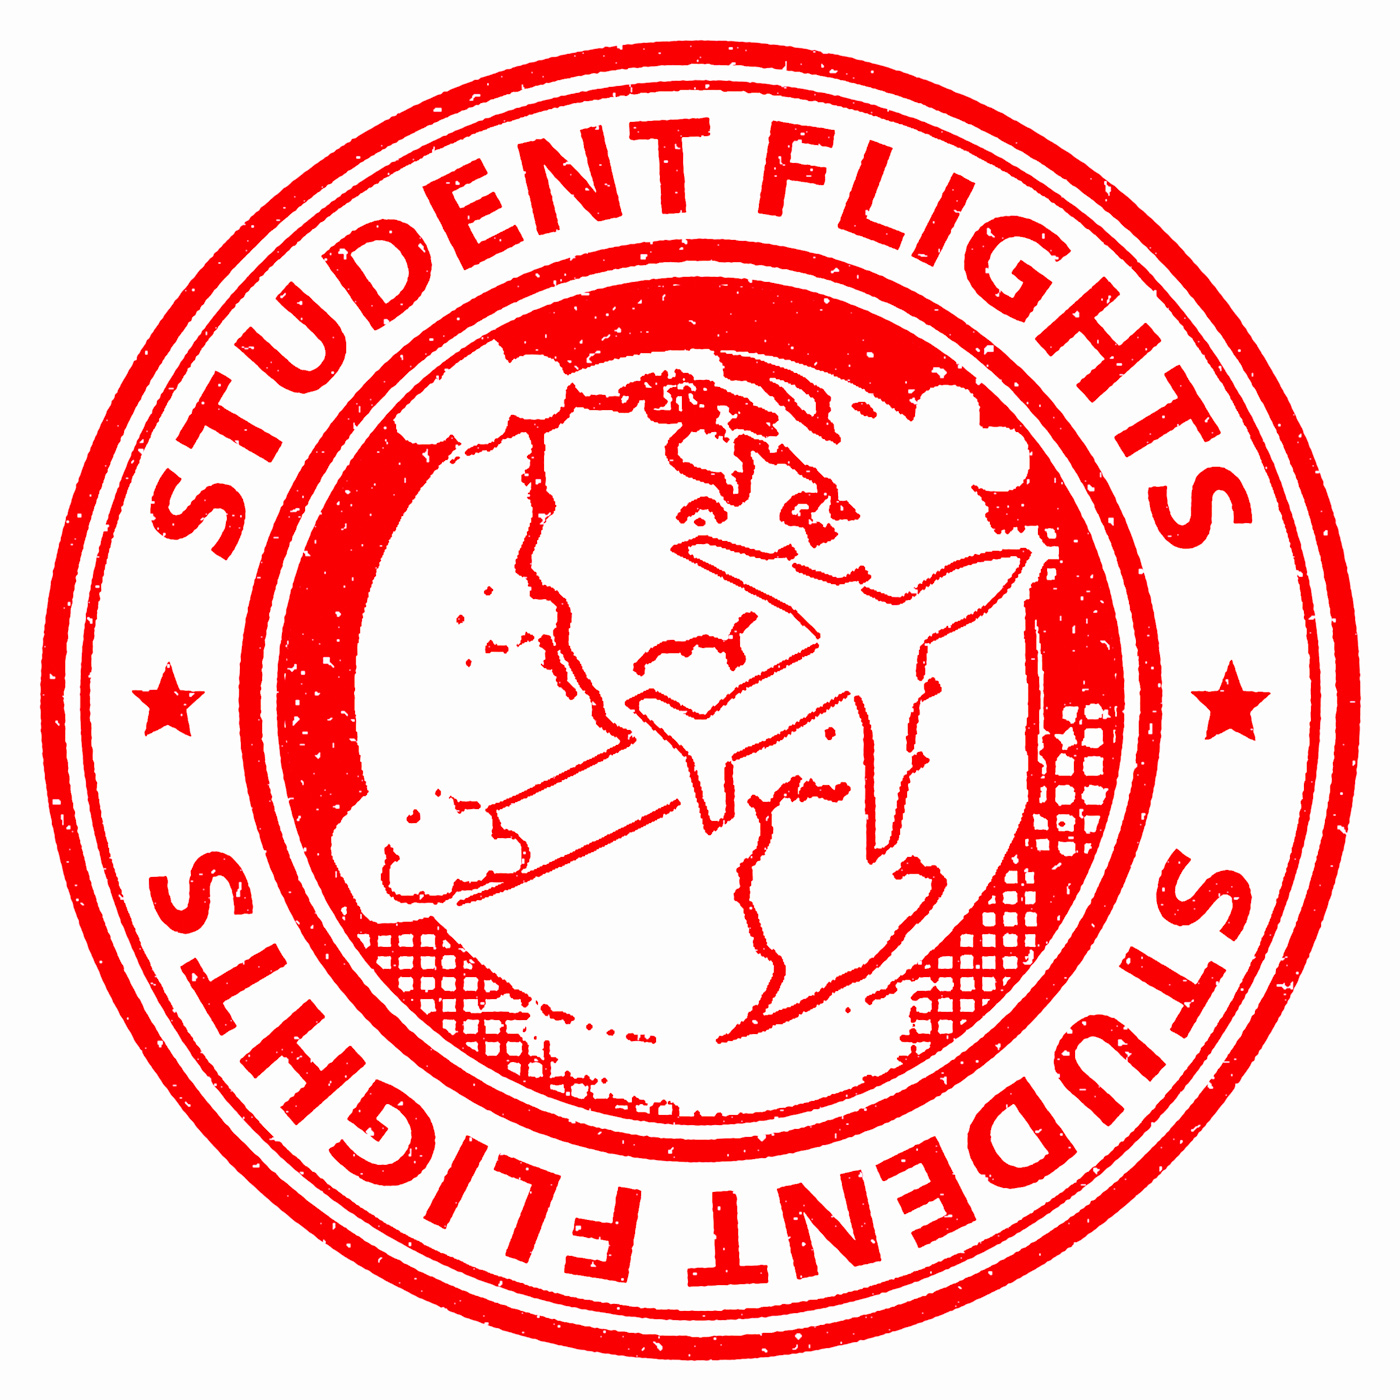 Student flights indicates plane aeroplane and aircraft photo